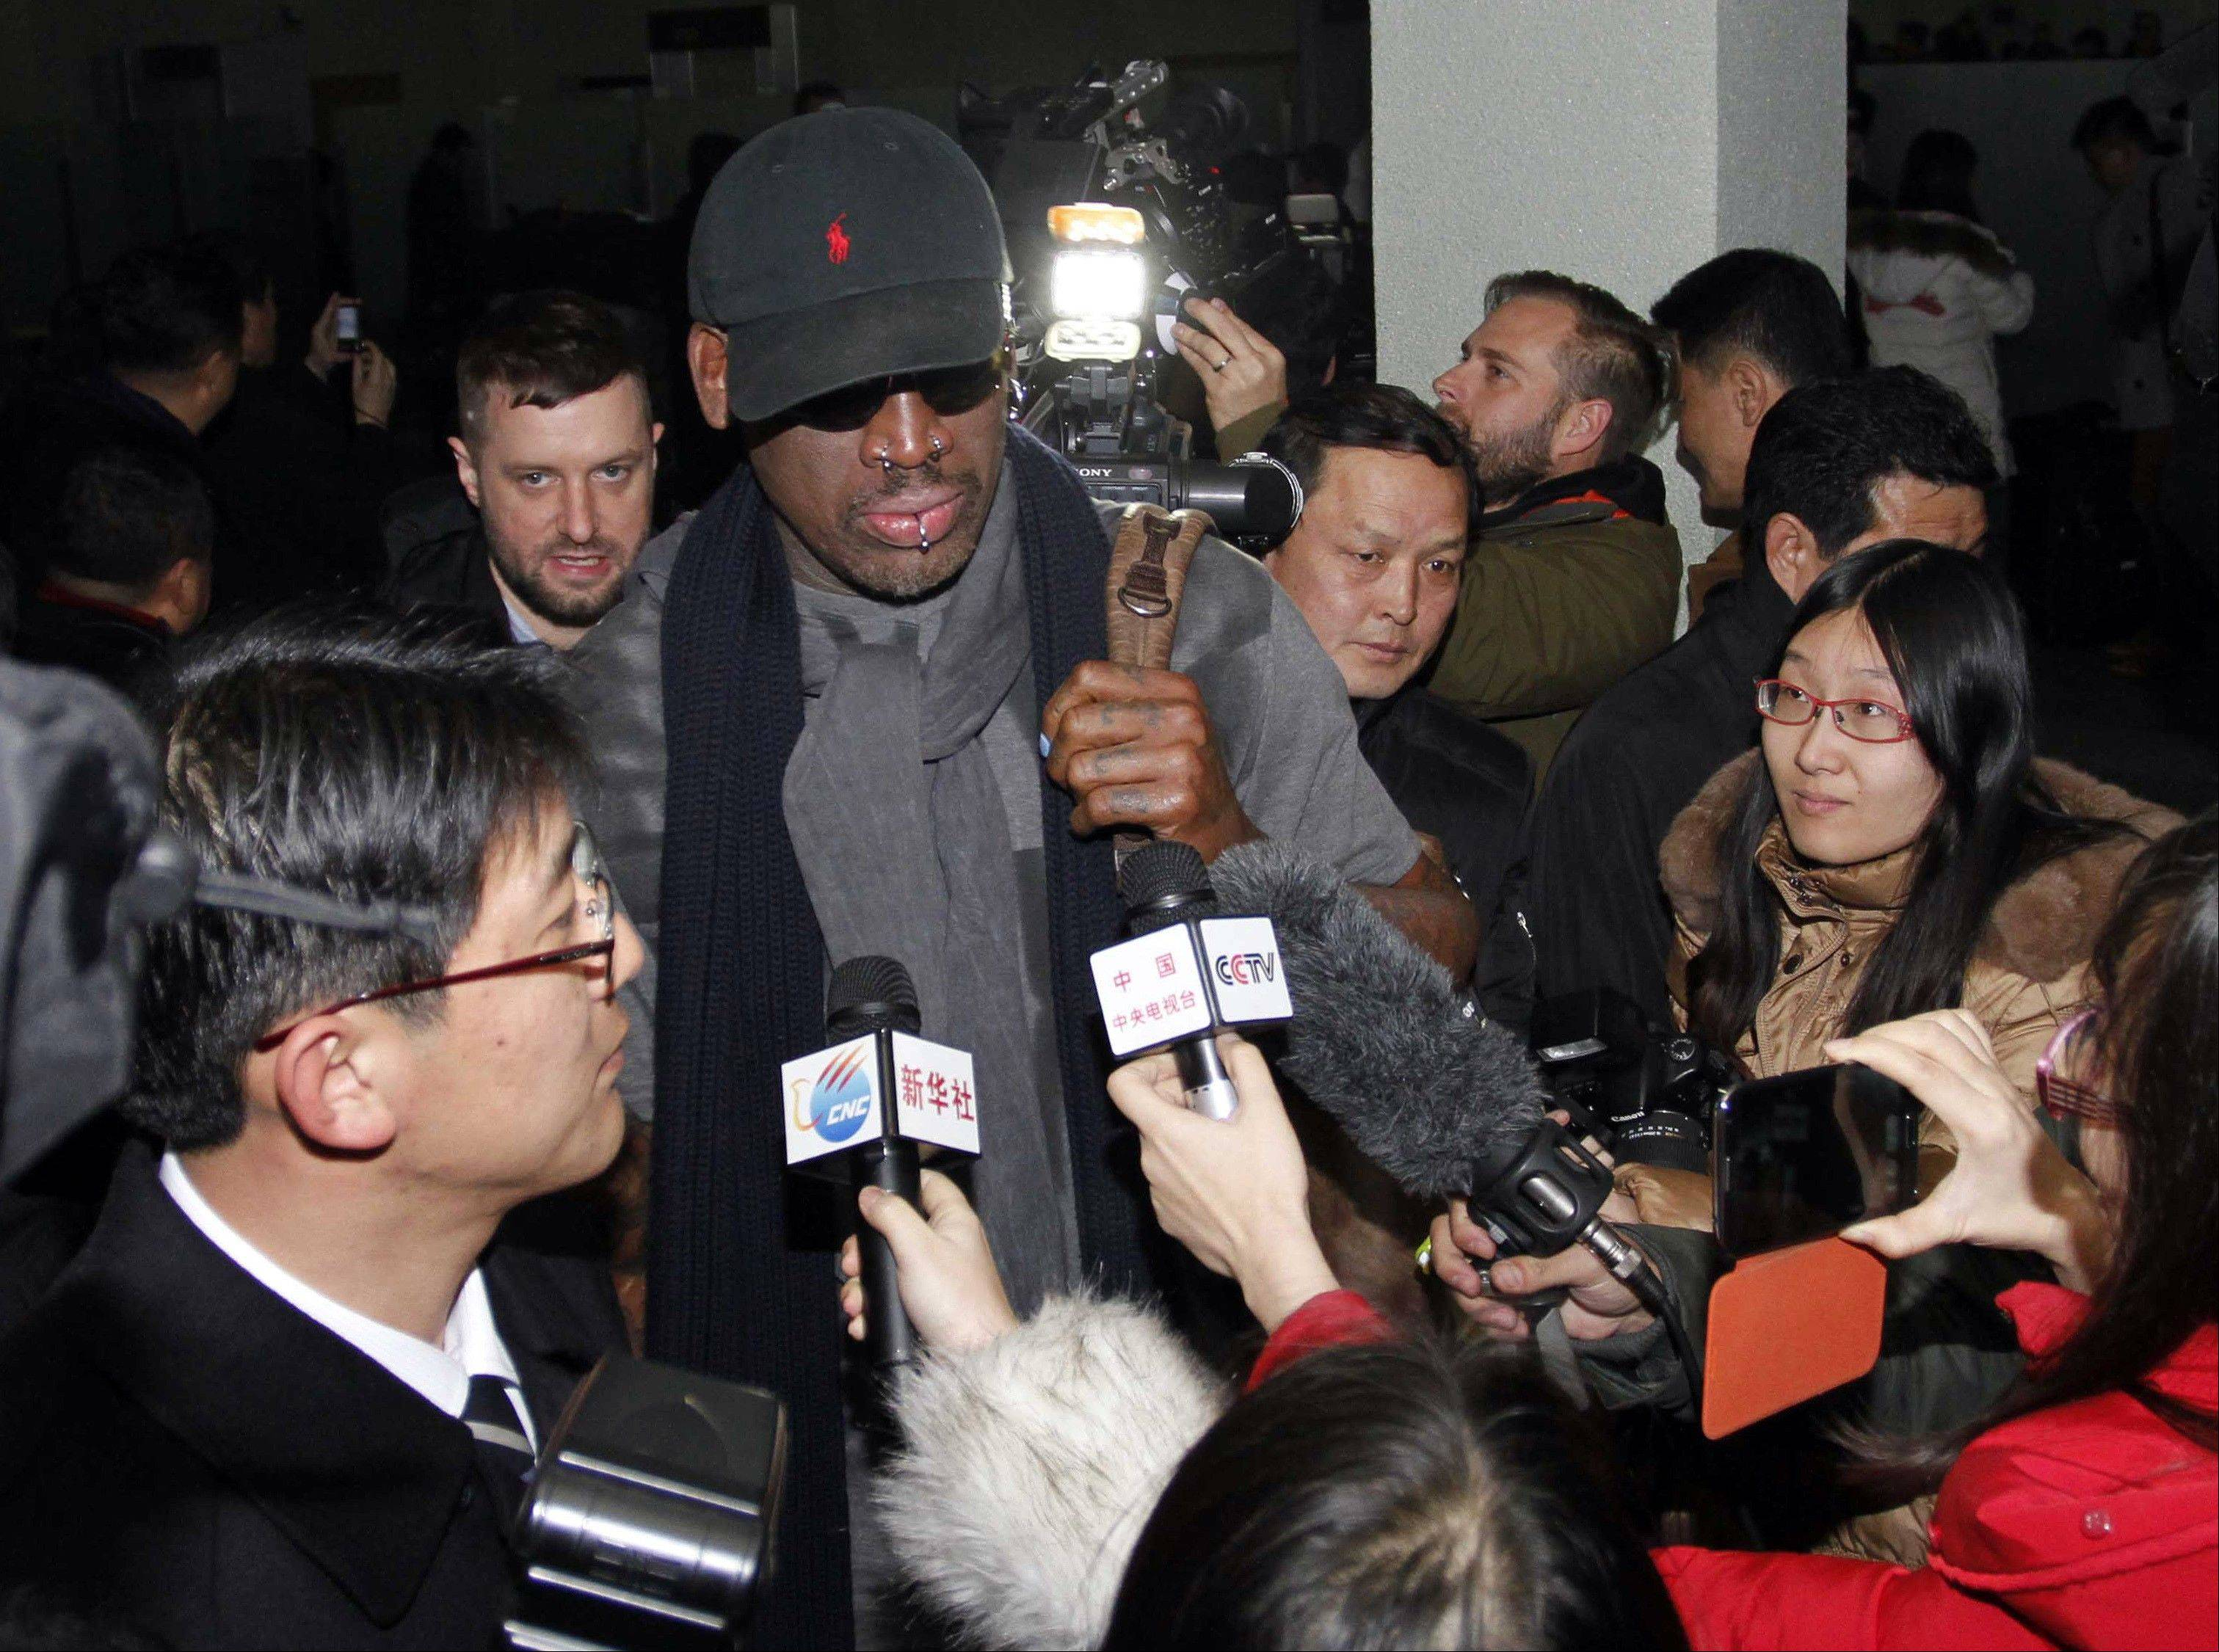 Flamboyant former NBA star Dennis Rodman is surrounded by journalists upon arrival at Pyongyang Airport, North Korea, Tuesday. The American known as �The Worm� arrived in Pyongyang, becoming an unlikely ambassador for sports diplomacy at a time of heightened tensions between the U.S. and North Korea.